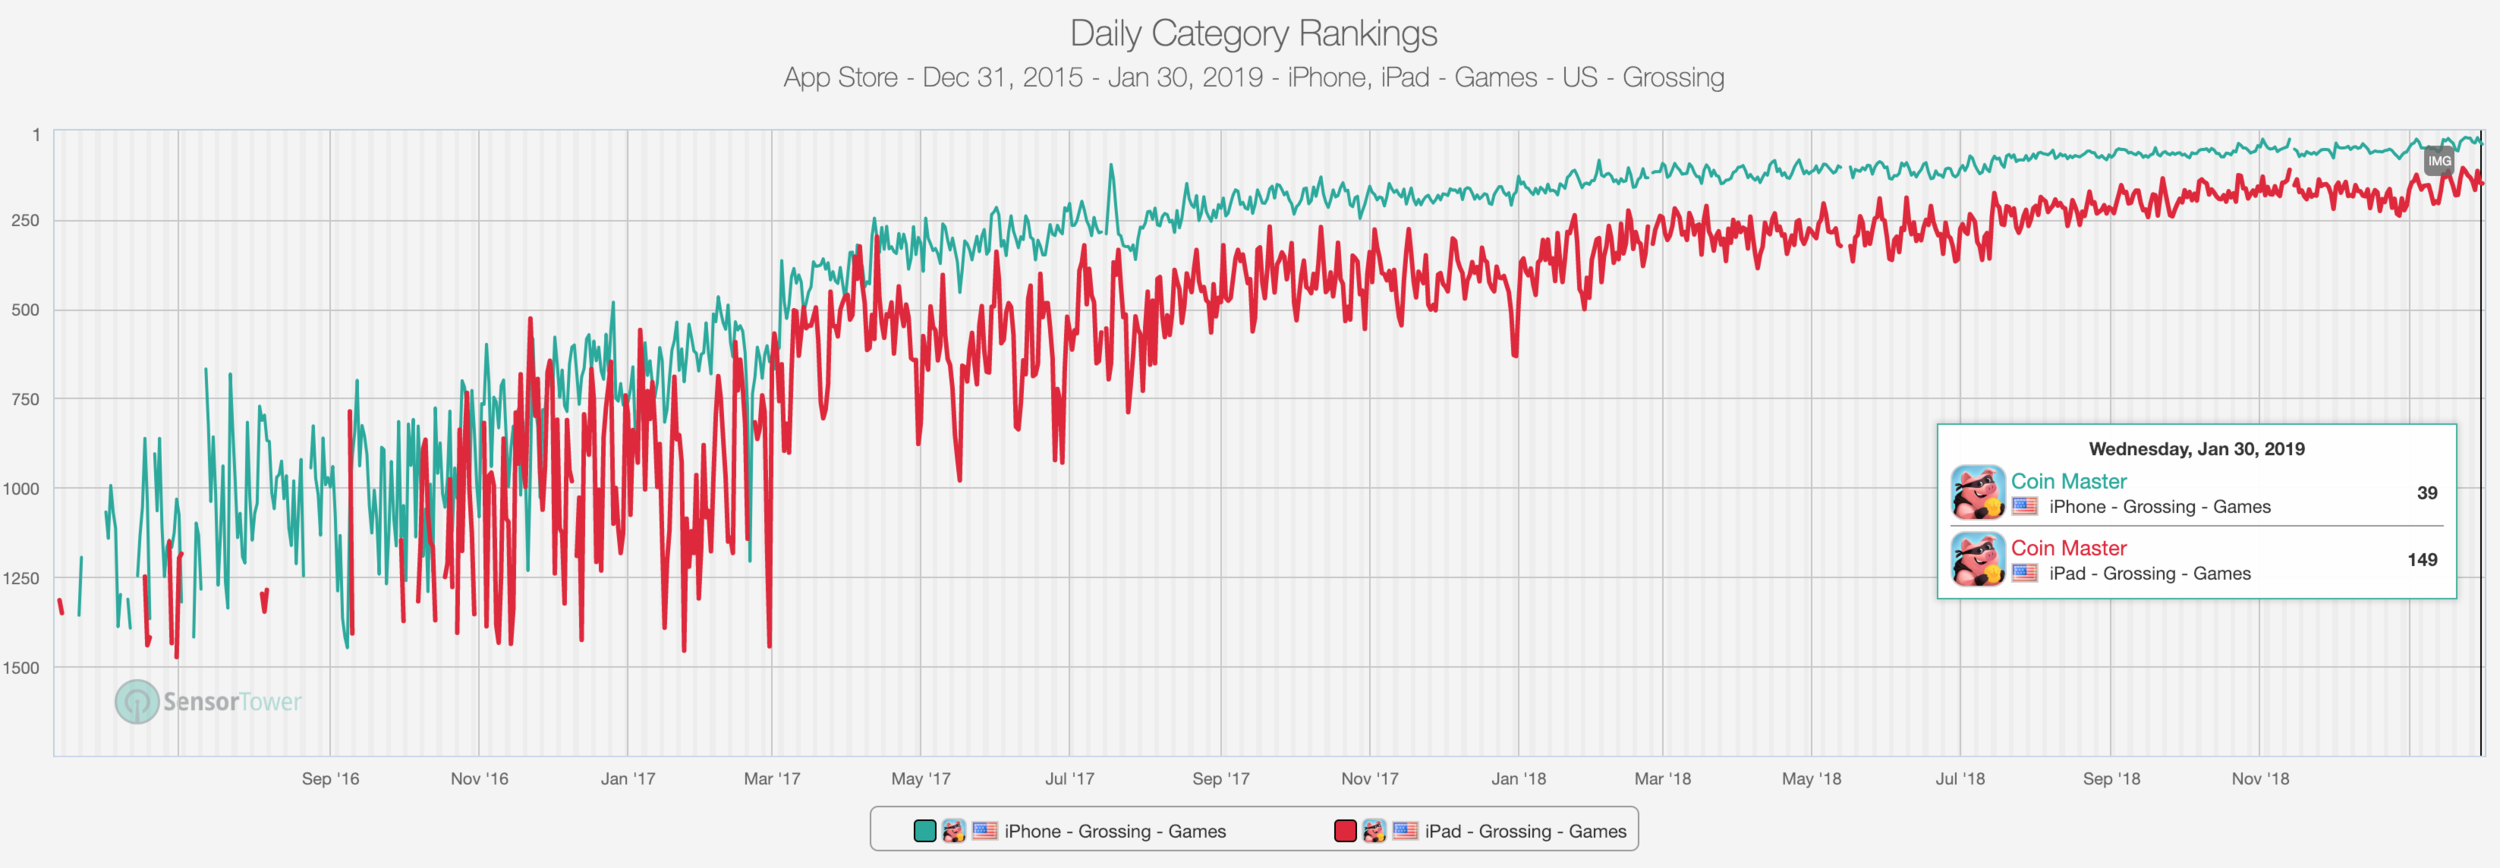 CM hovers in the top 50 grossing games.